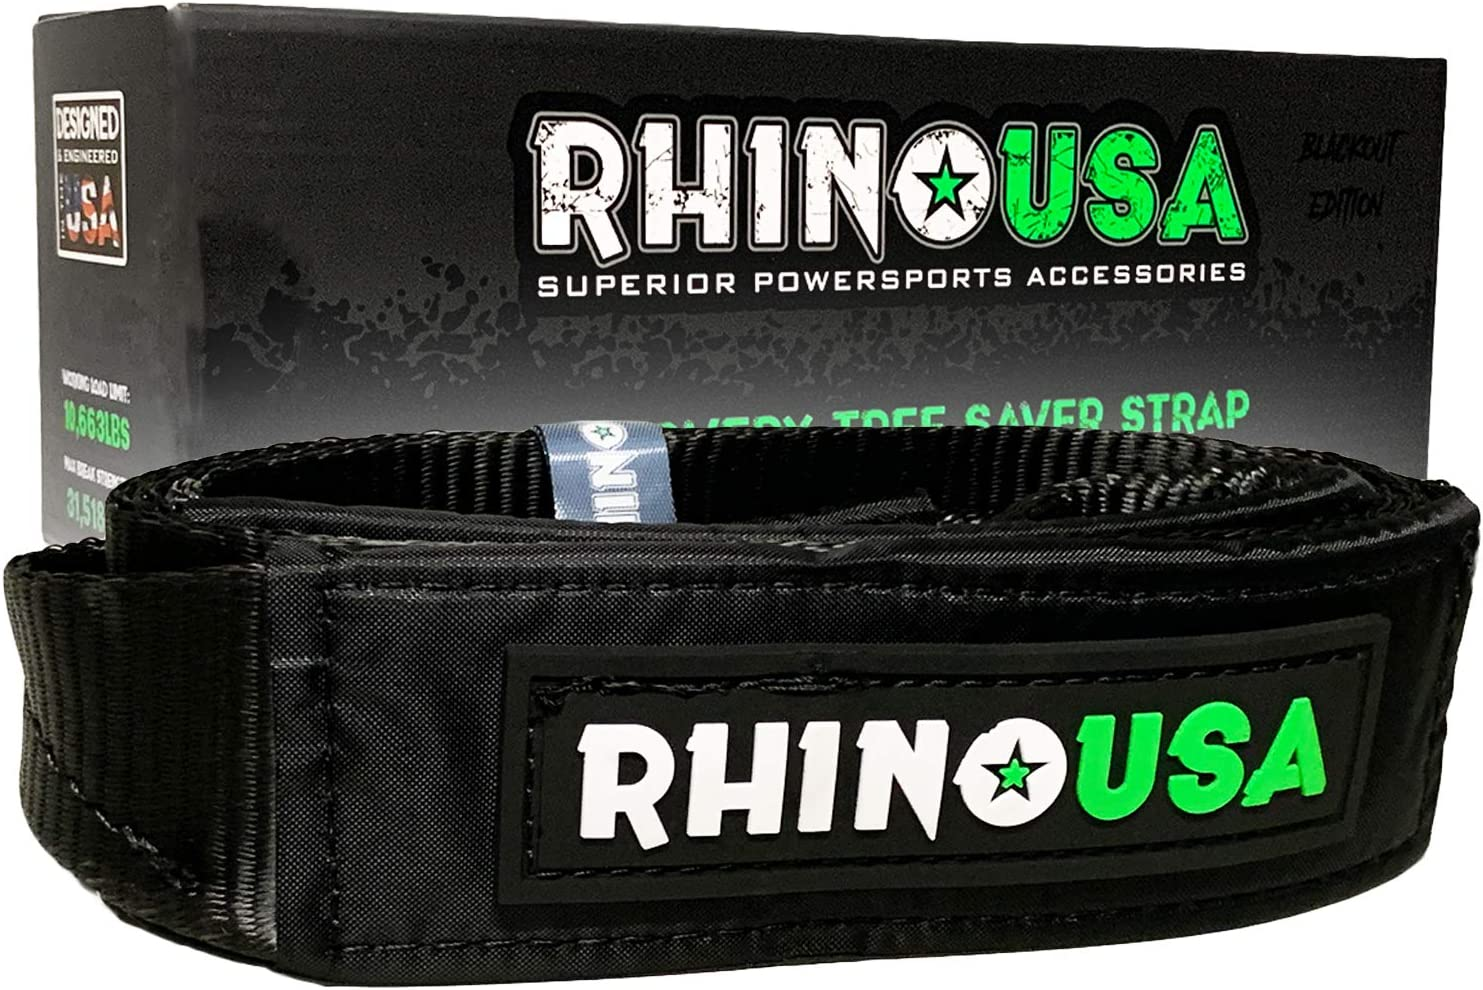 Emergency Offroad Rope Rhino USA Recovery Tow Strap 3 x 30ft Heavy Duty Draw String Bag Included Blackout Edition Lab Tested 31,518lb Break Strength Triple Reinforced Loop End